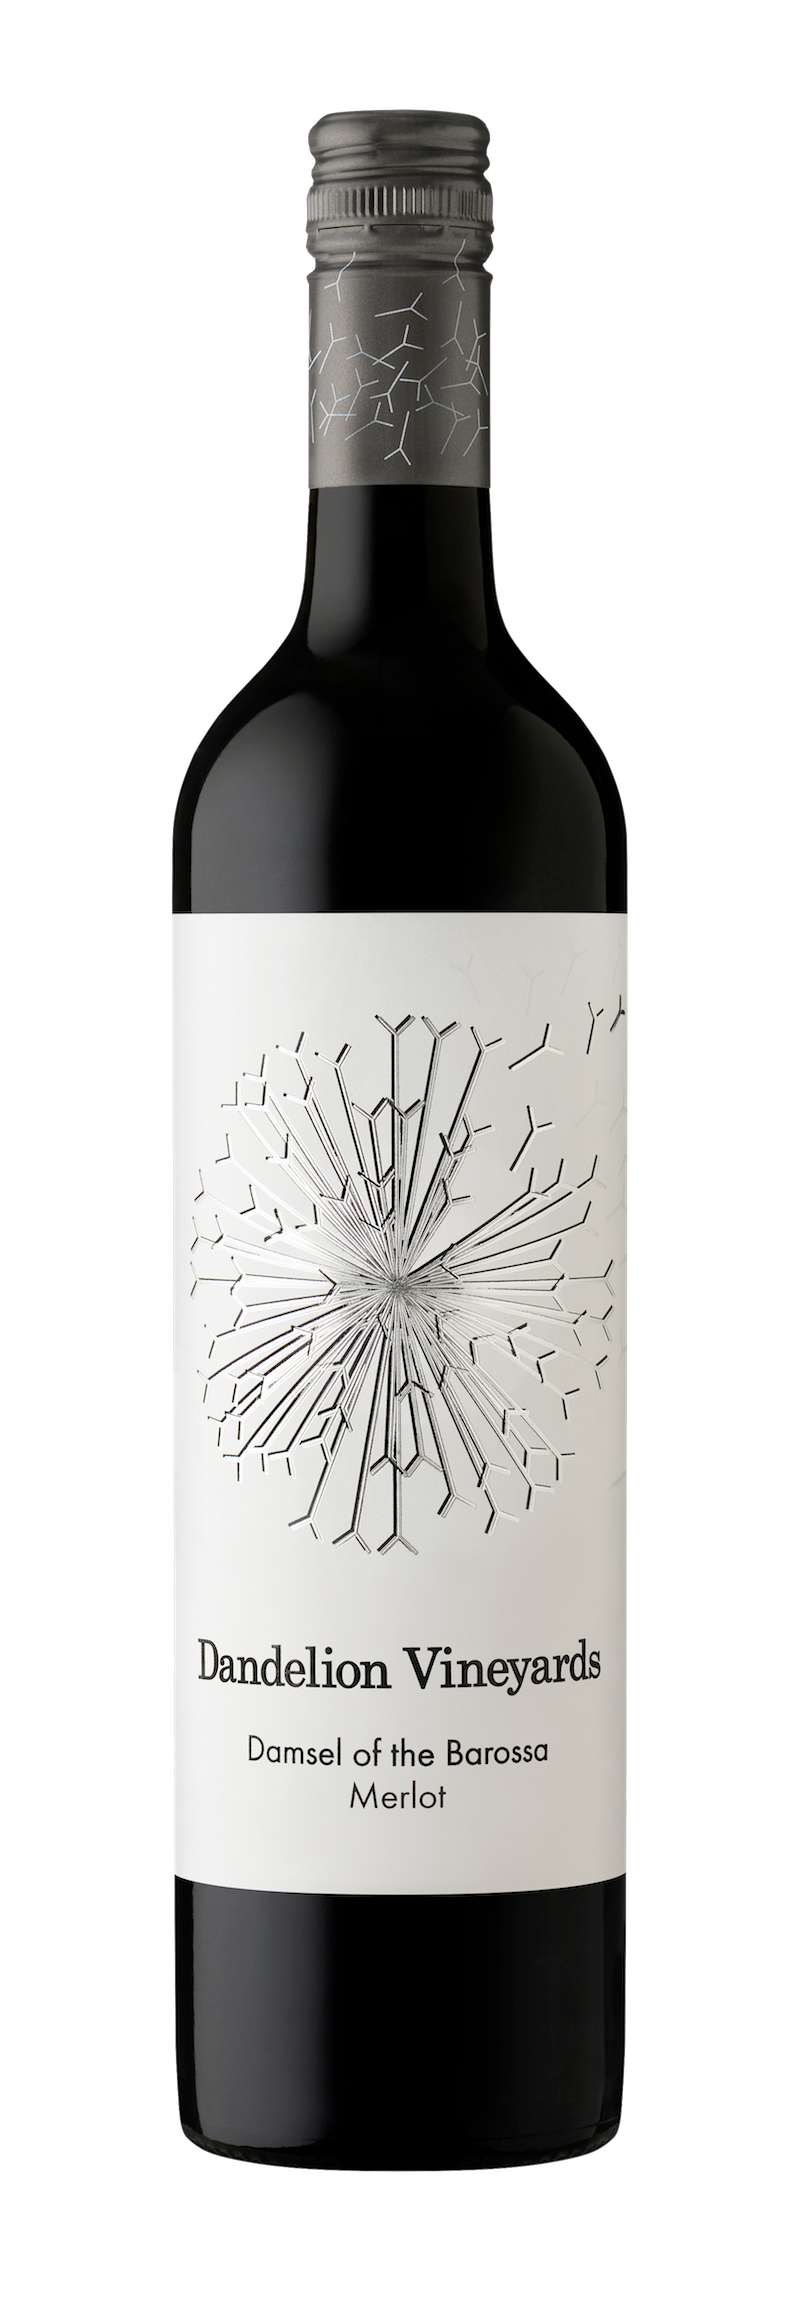 2018 Dandelion Vineyards Damsel of the Barossa Merlot